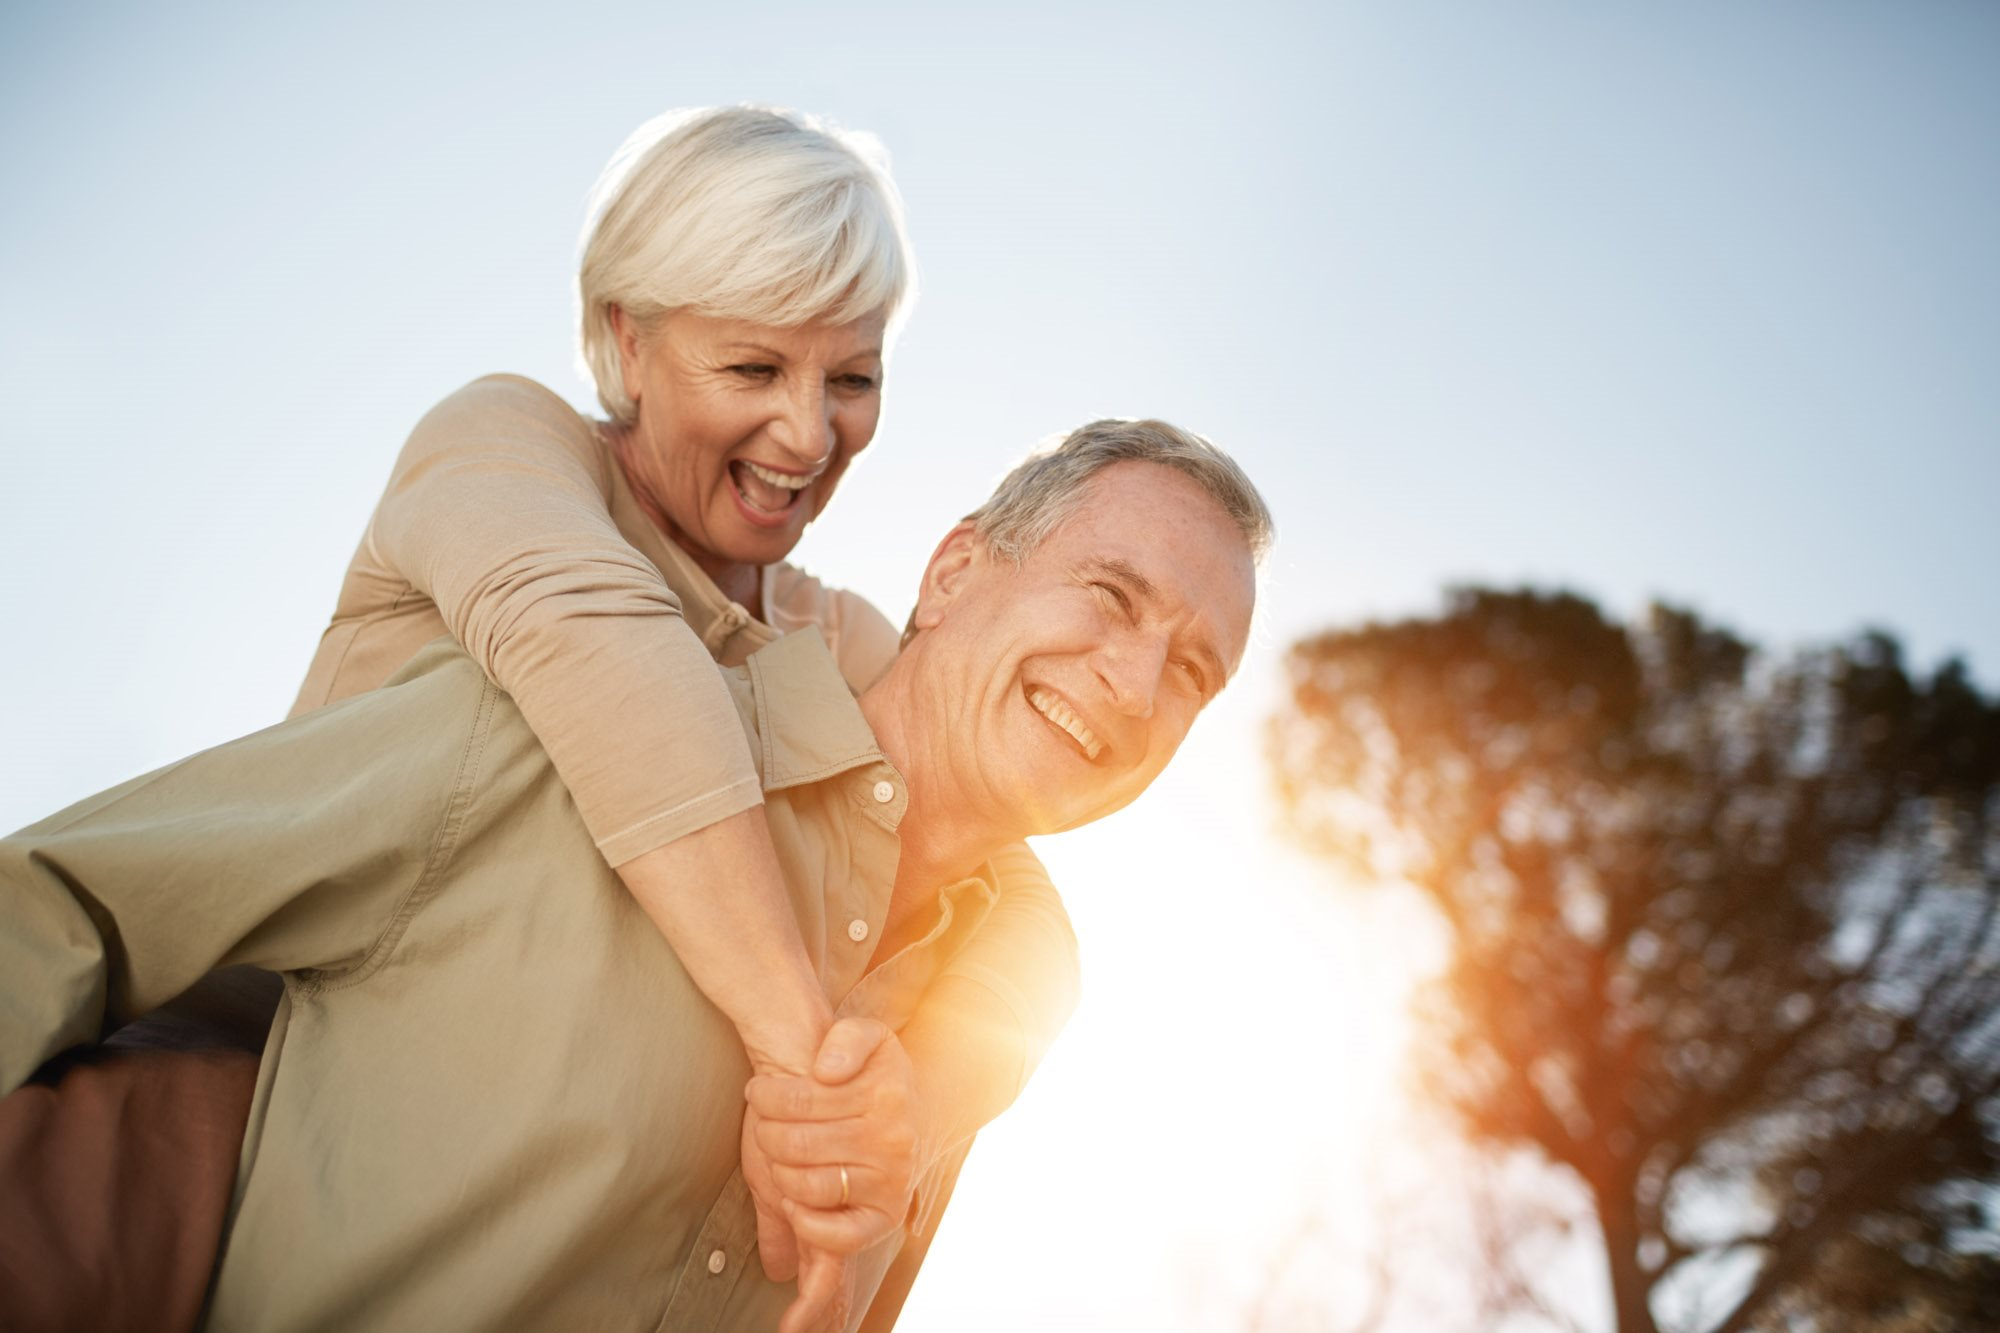 stock image- happy senior couple